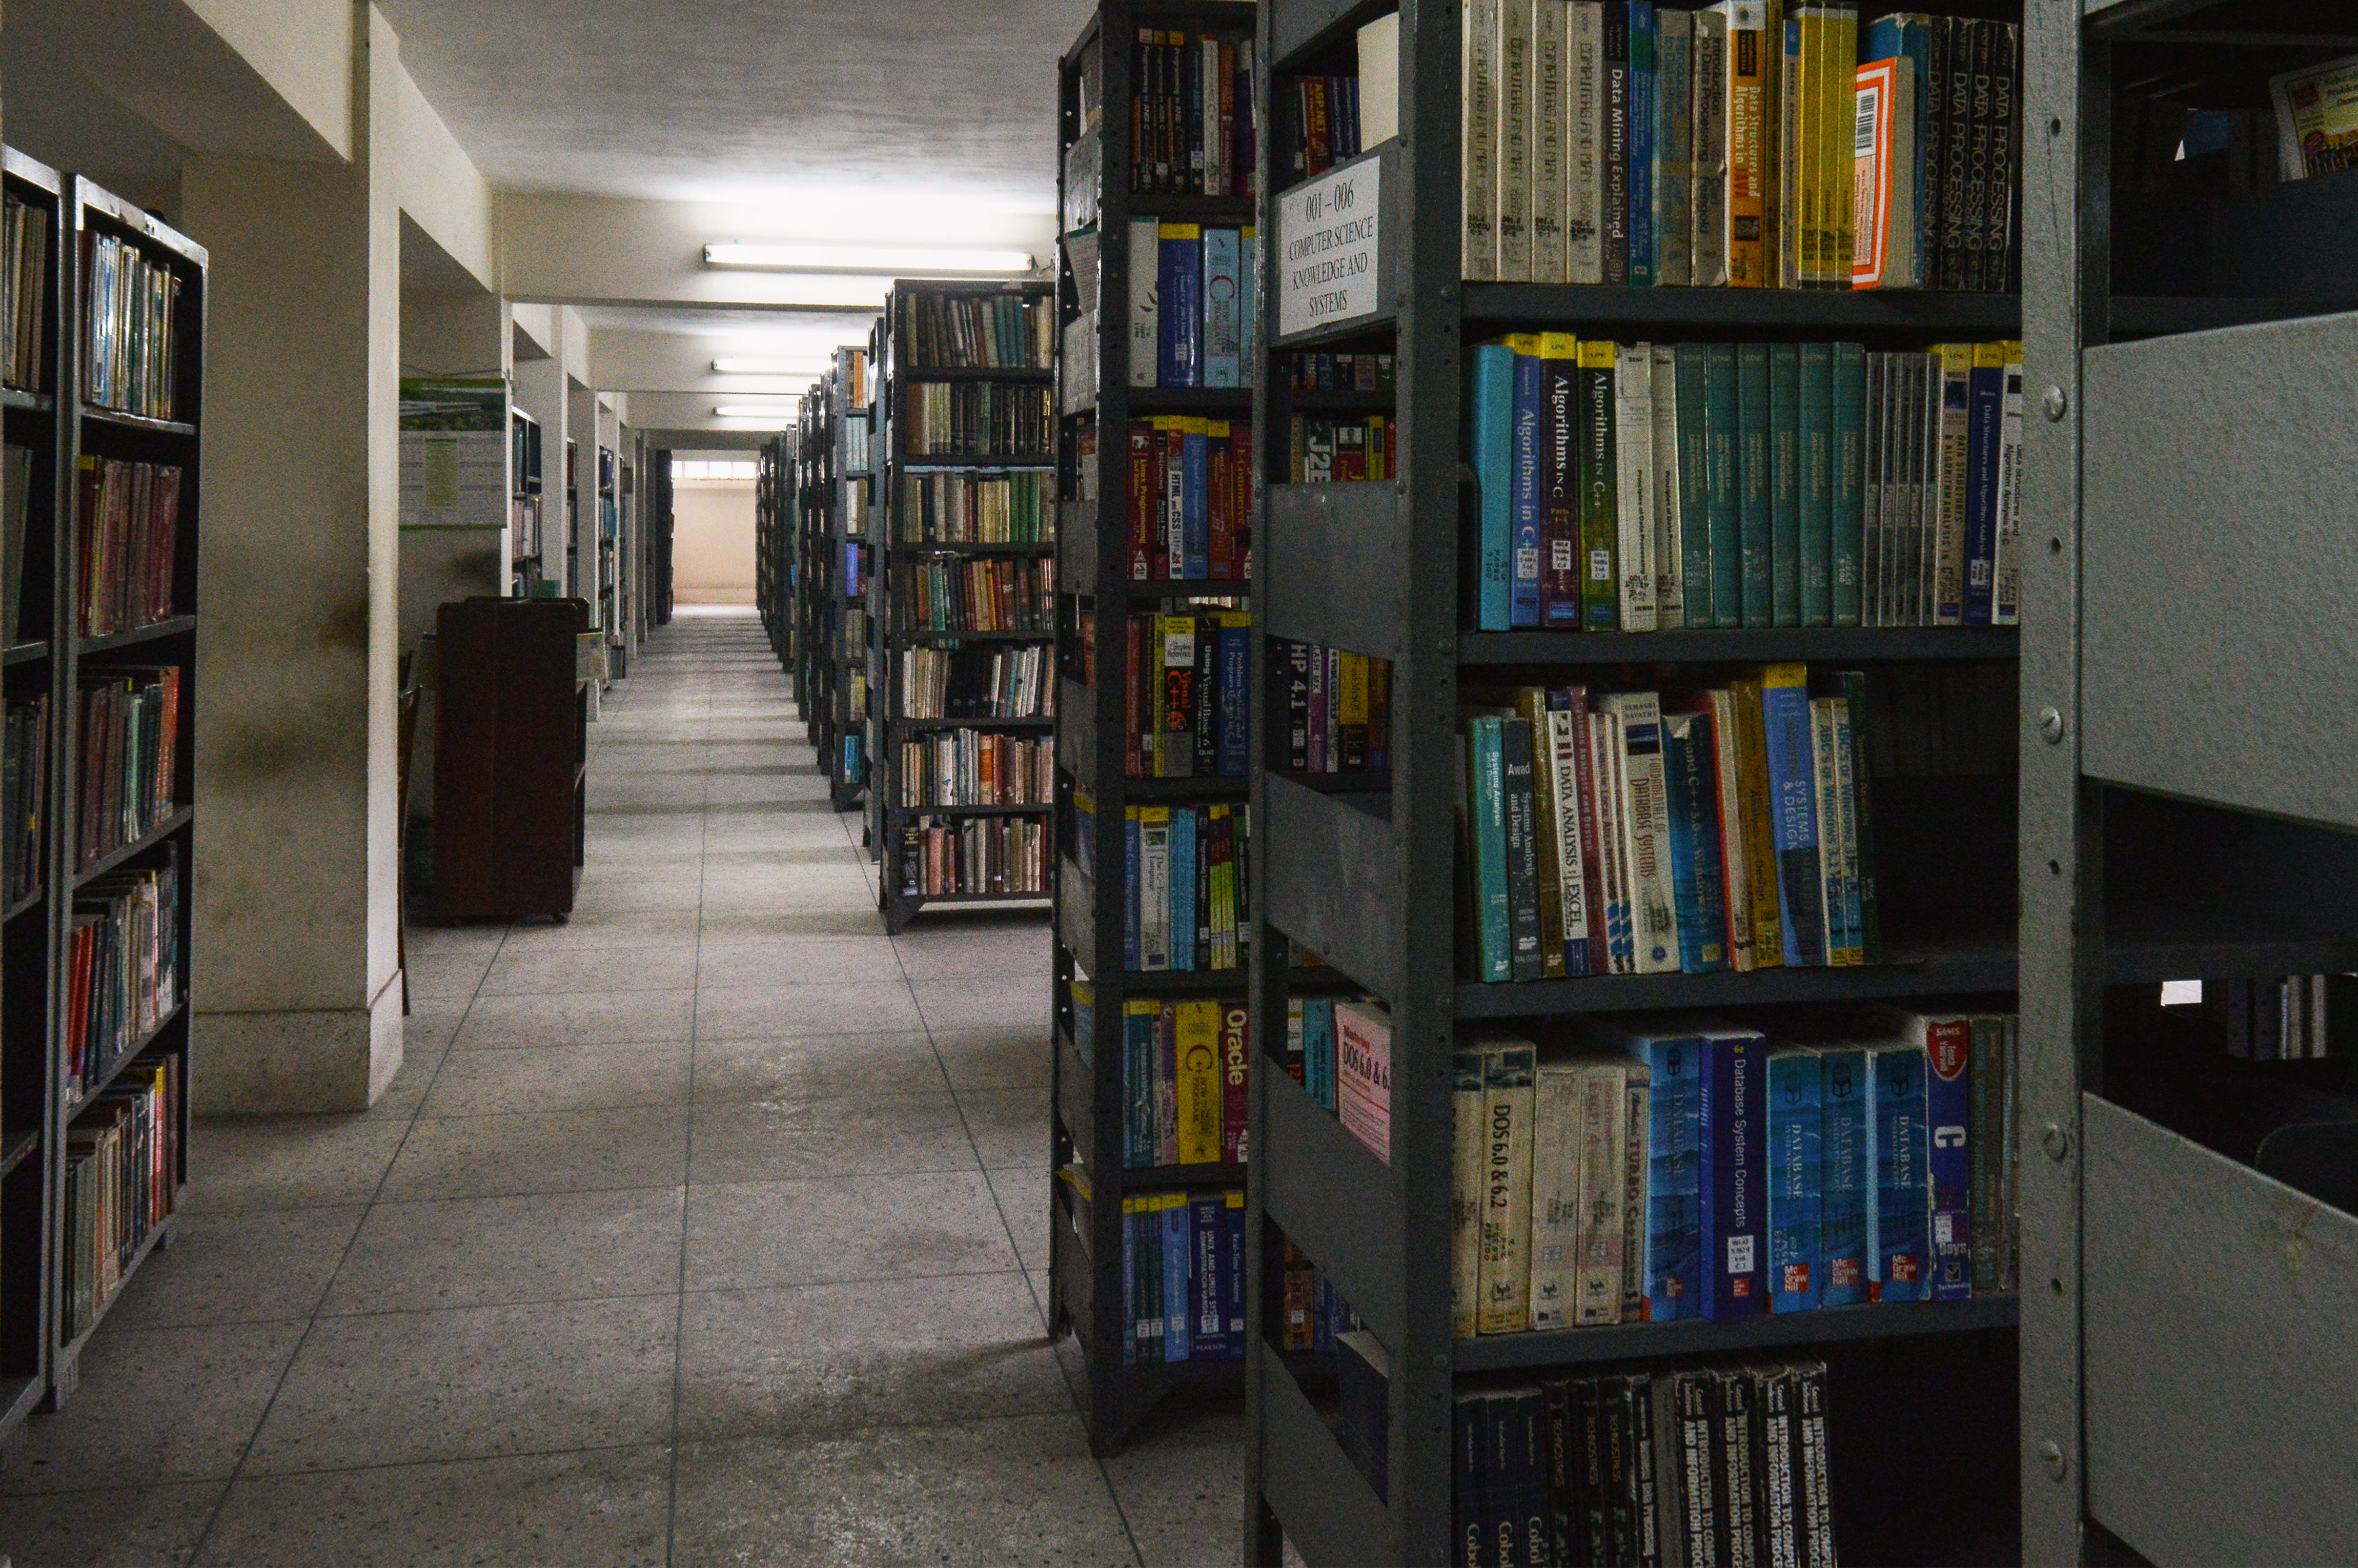 File:Bibliography shelves in Chittagong University Library